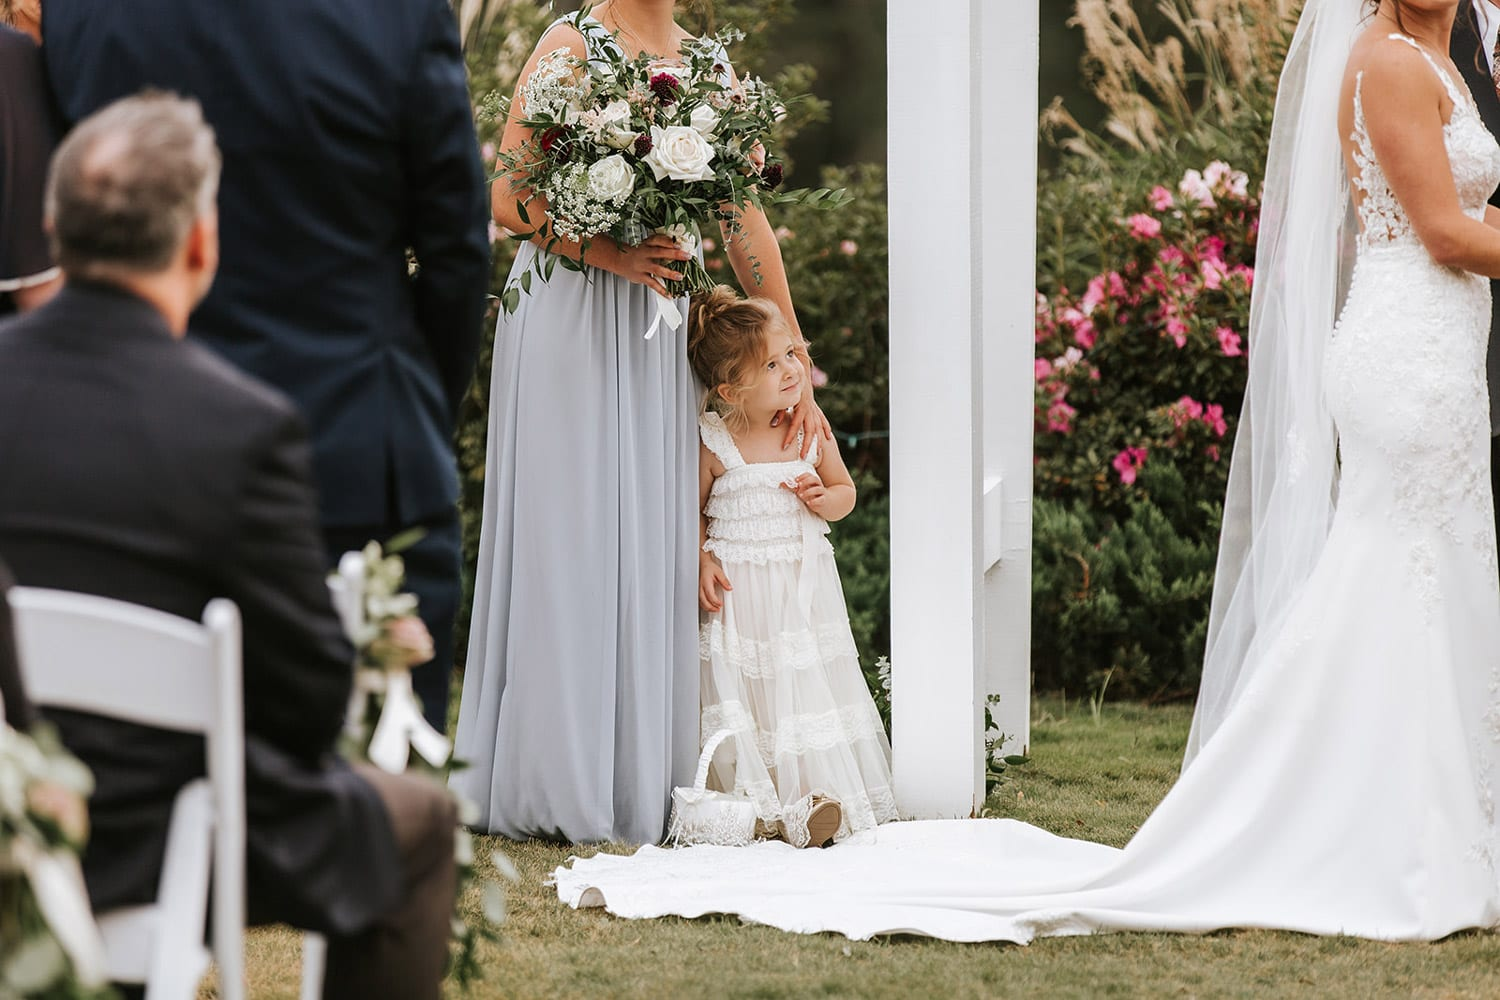 Flower girl looks up at bride during ceremony